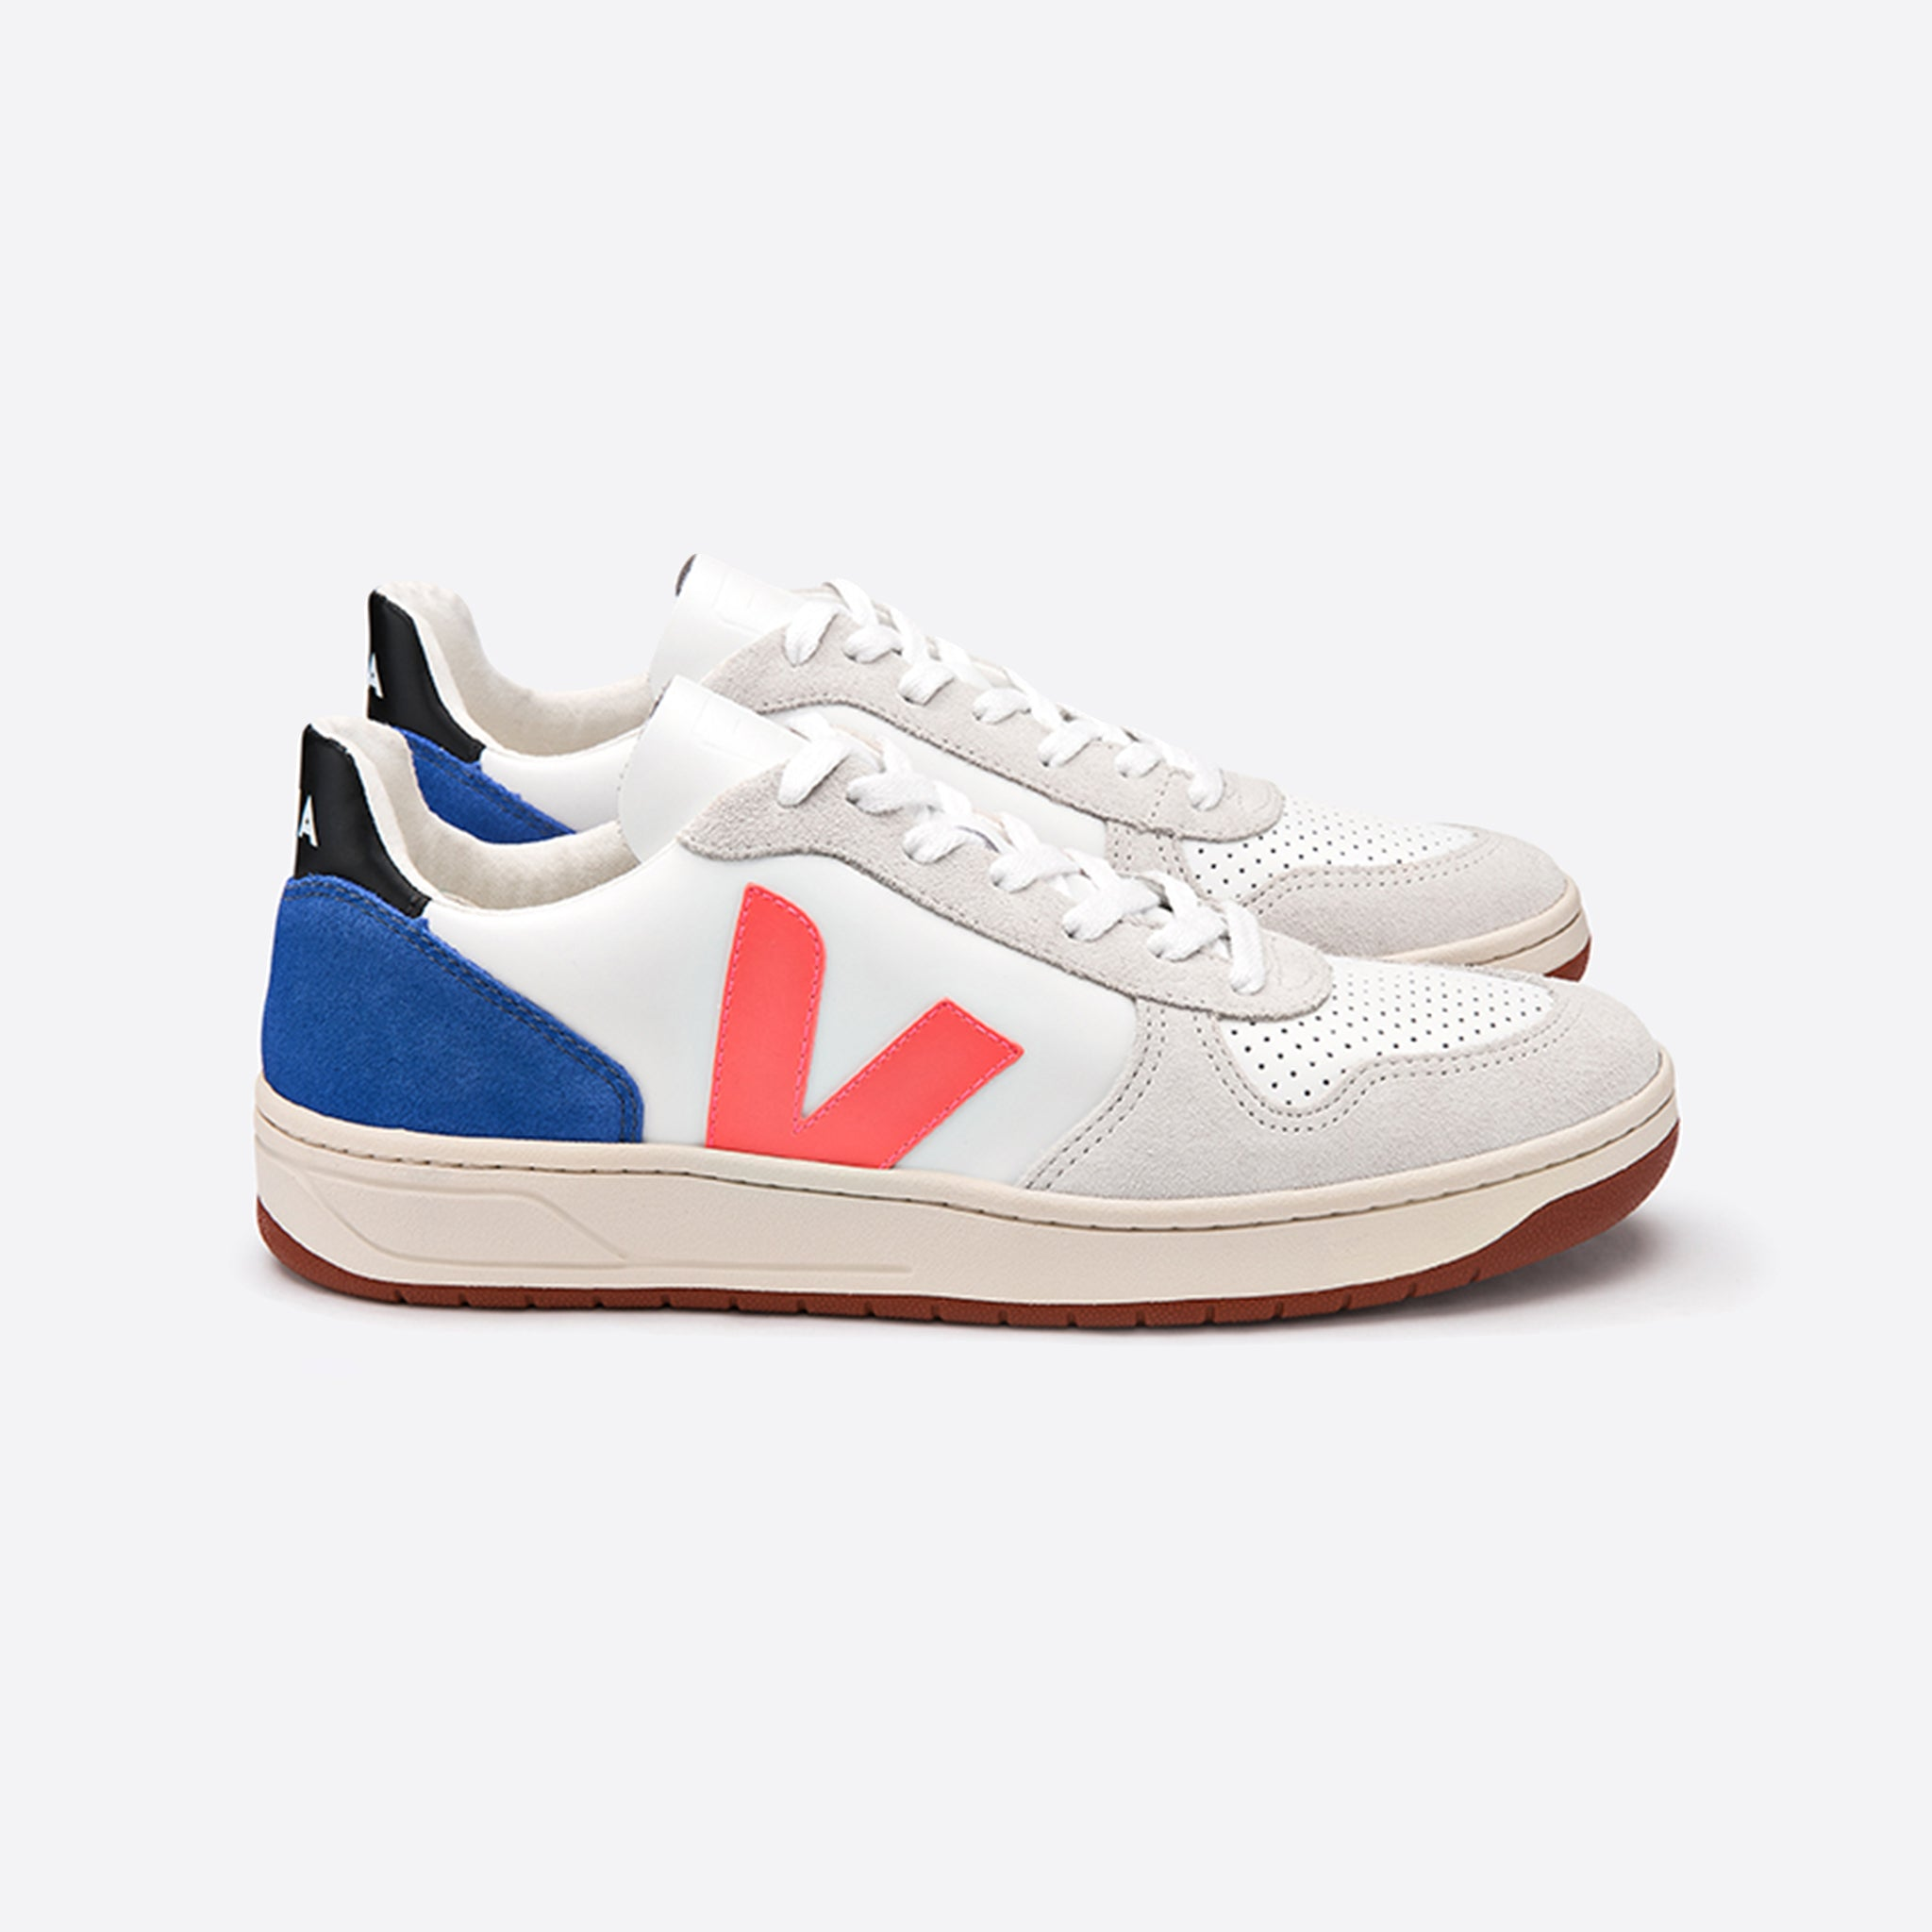 Veja V-10 Bastille Leather x Bellerose